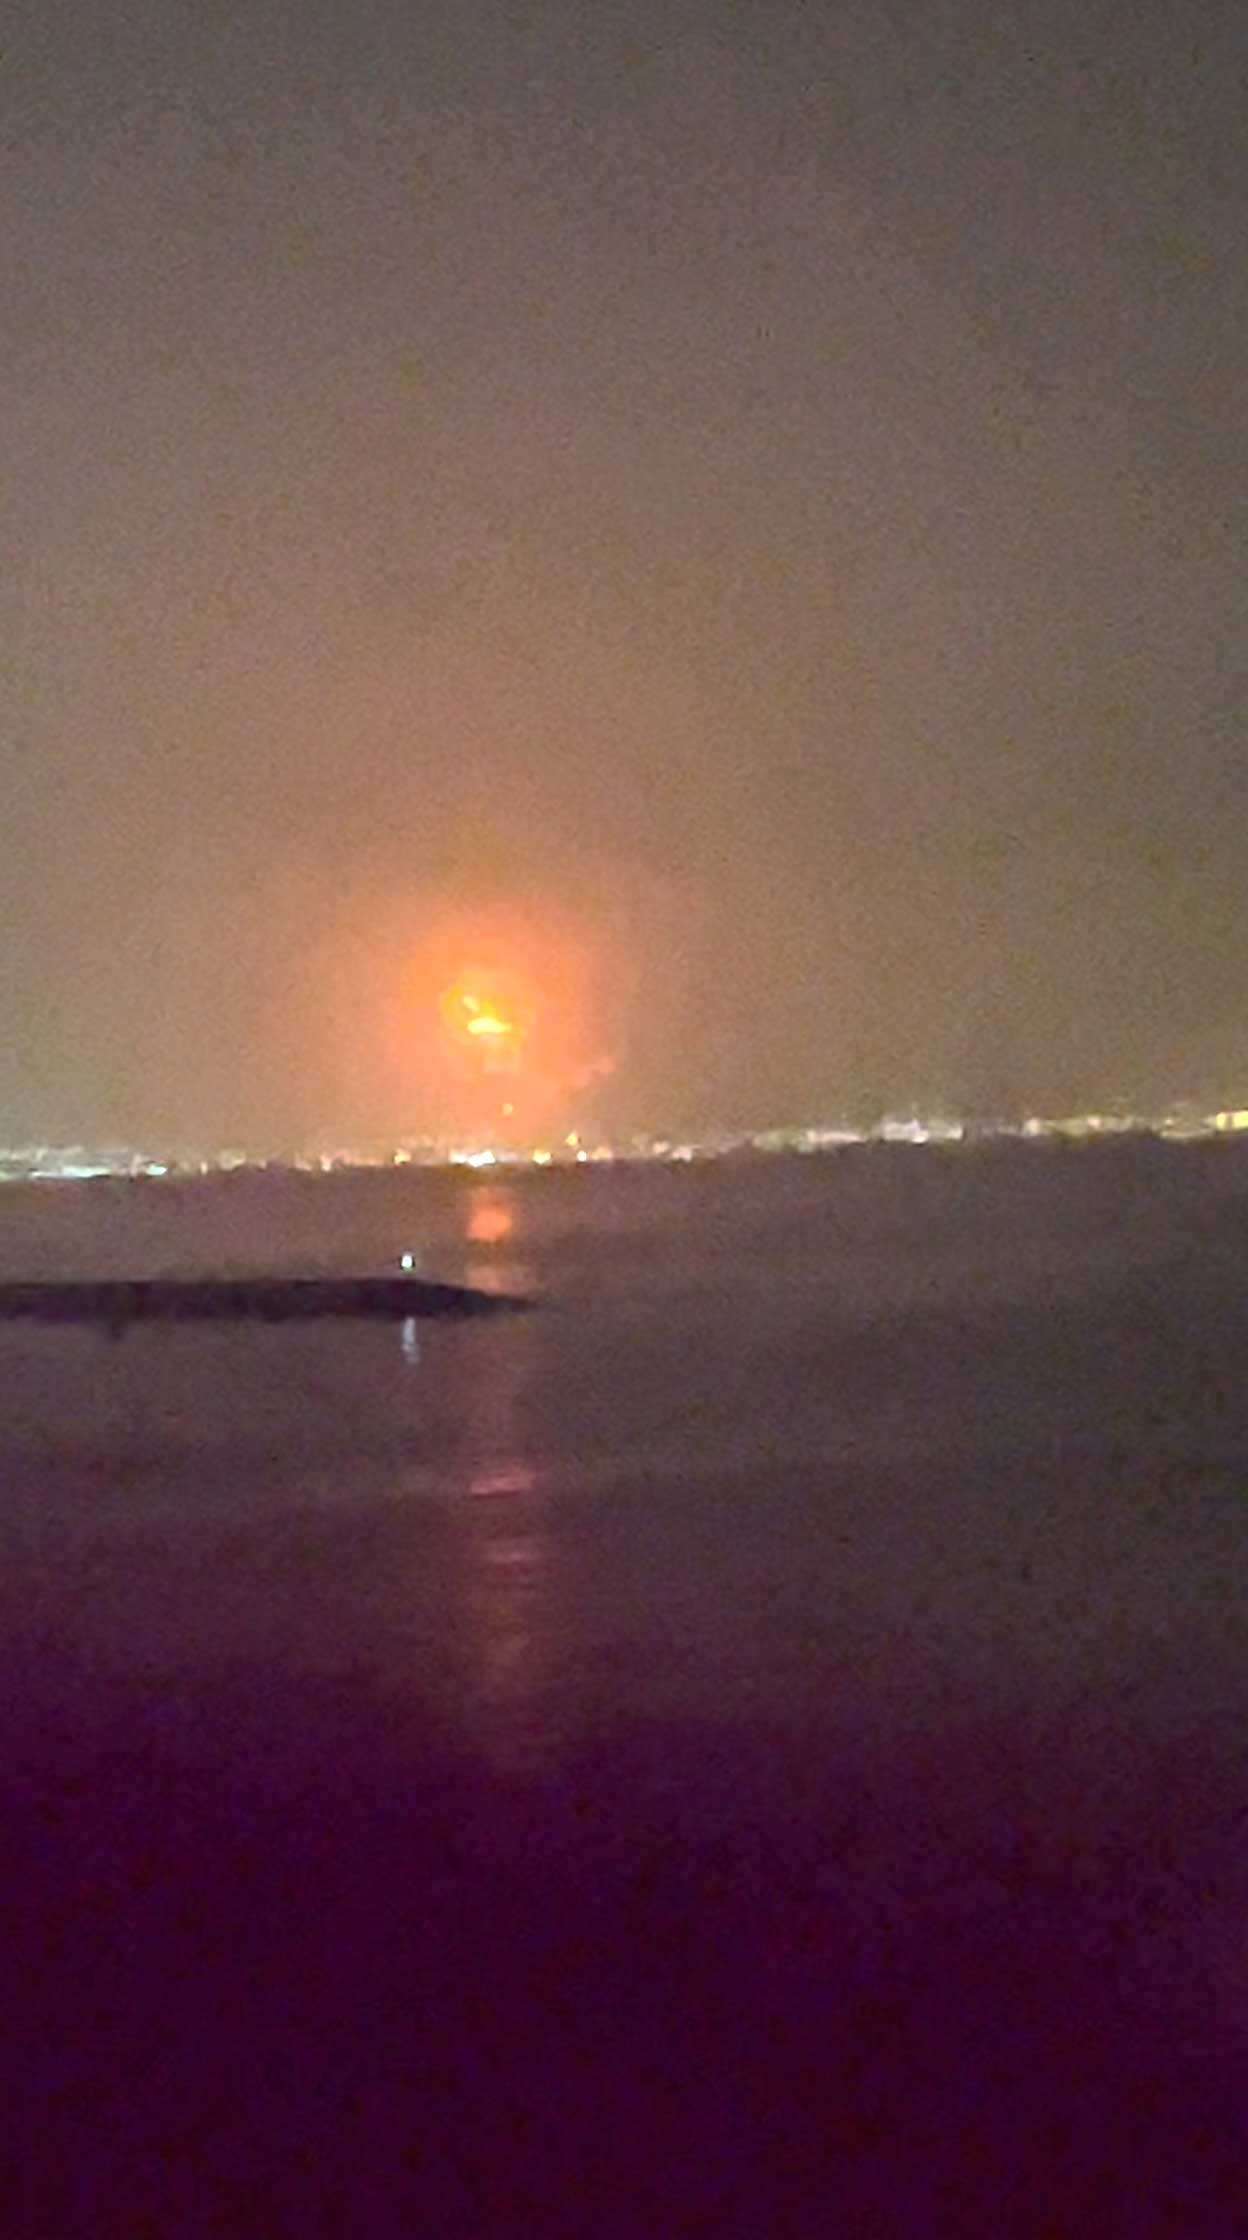 Fire caused by an explosion is seen at Dubais Jebel Ali Port in Dubai, United Arab Emirates, July 7, 2021, in this still image taken from video obtained from social media.-via REUTERS